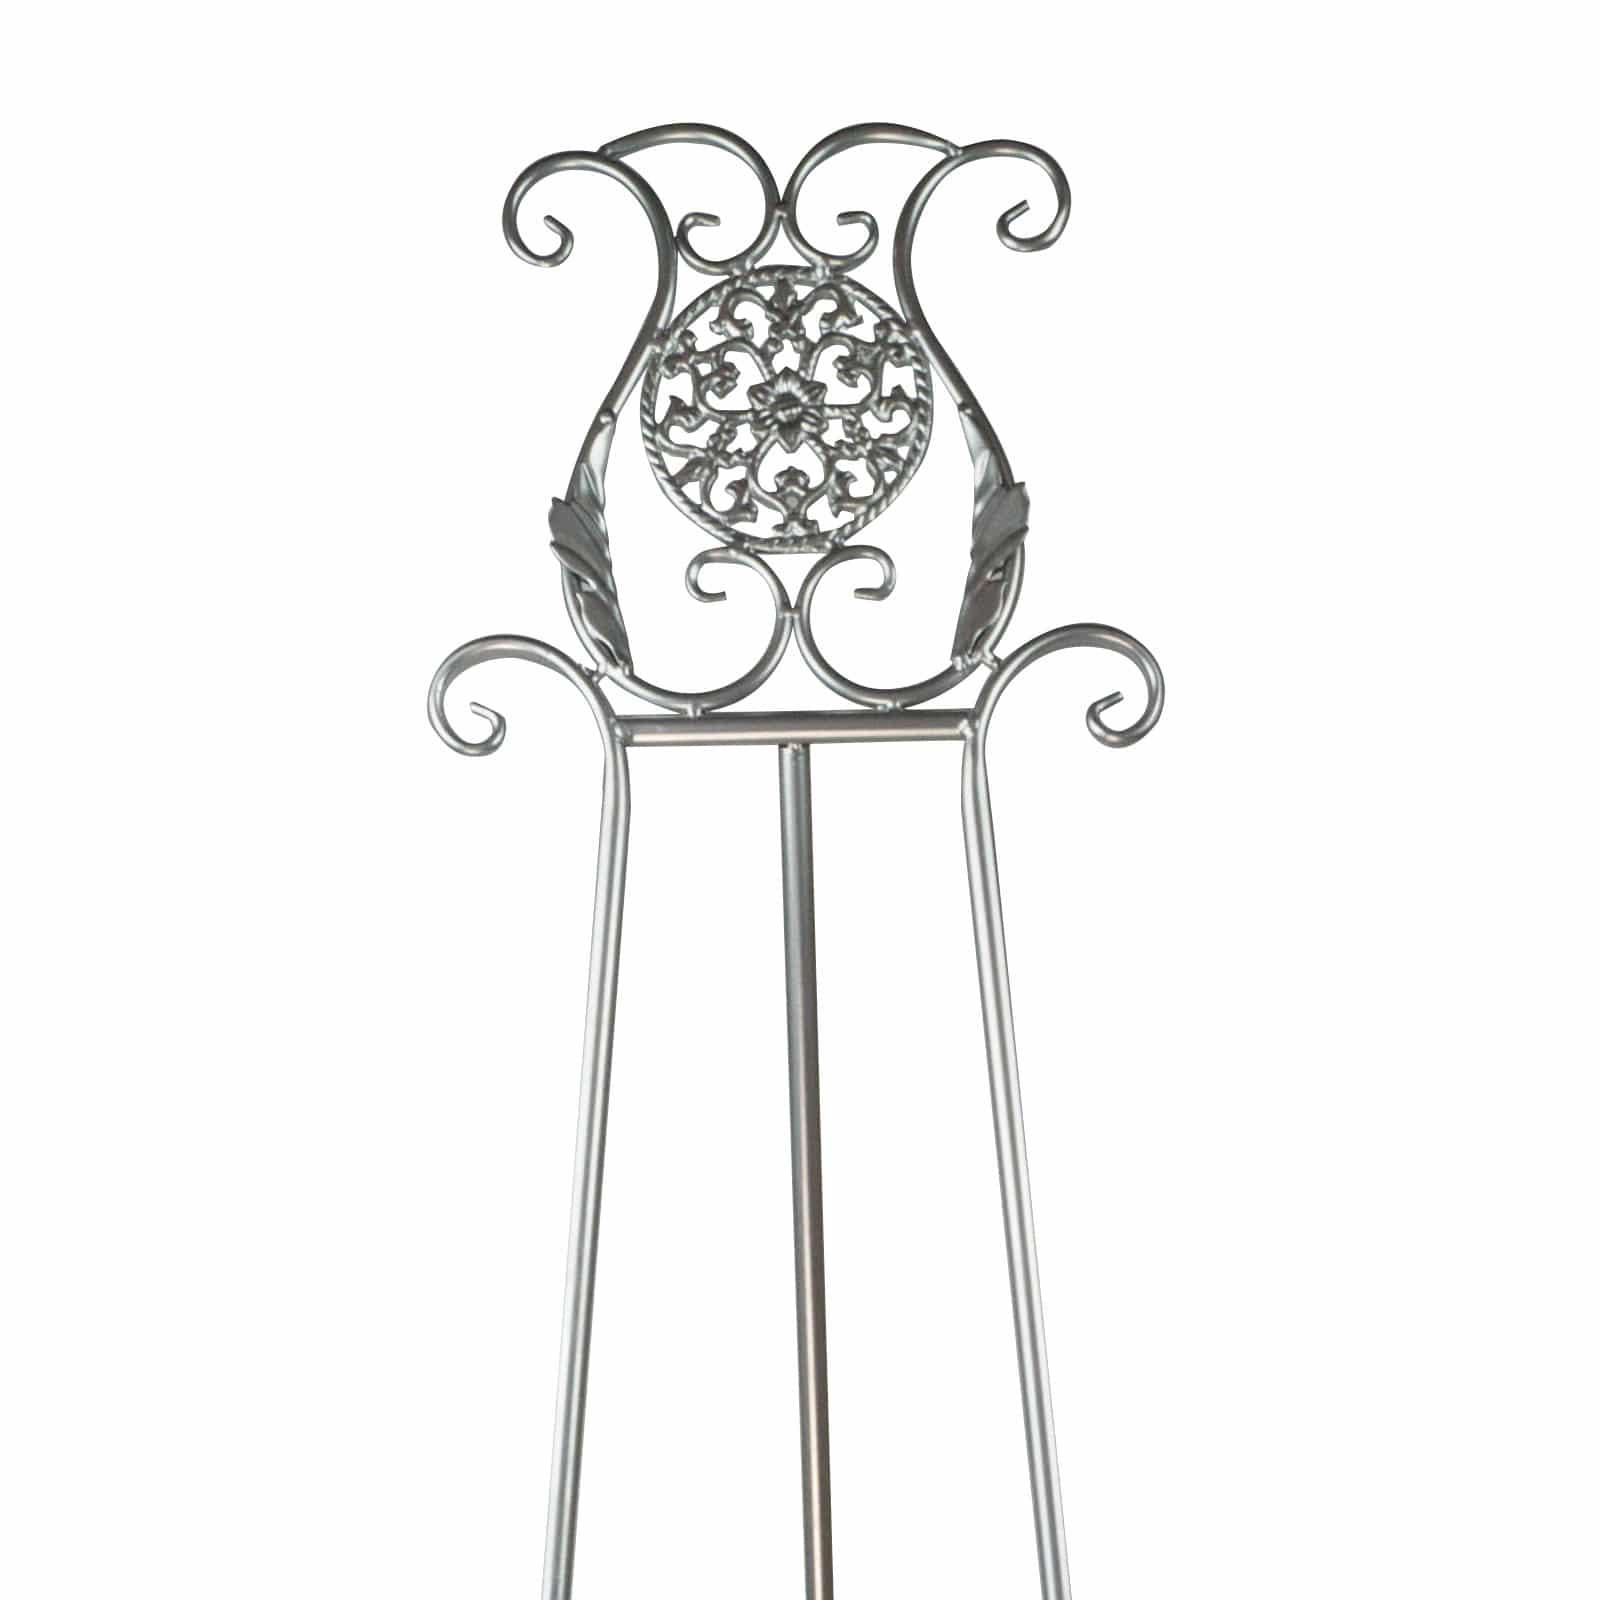 1600x1600 Ornate Metal Display Easel